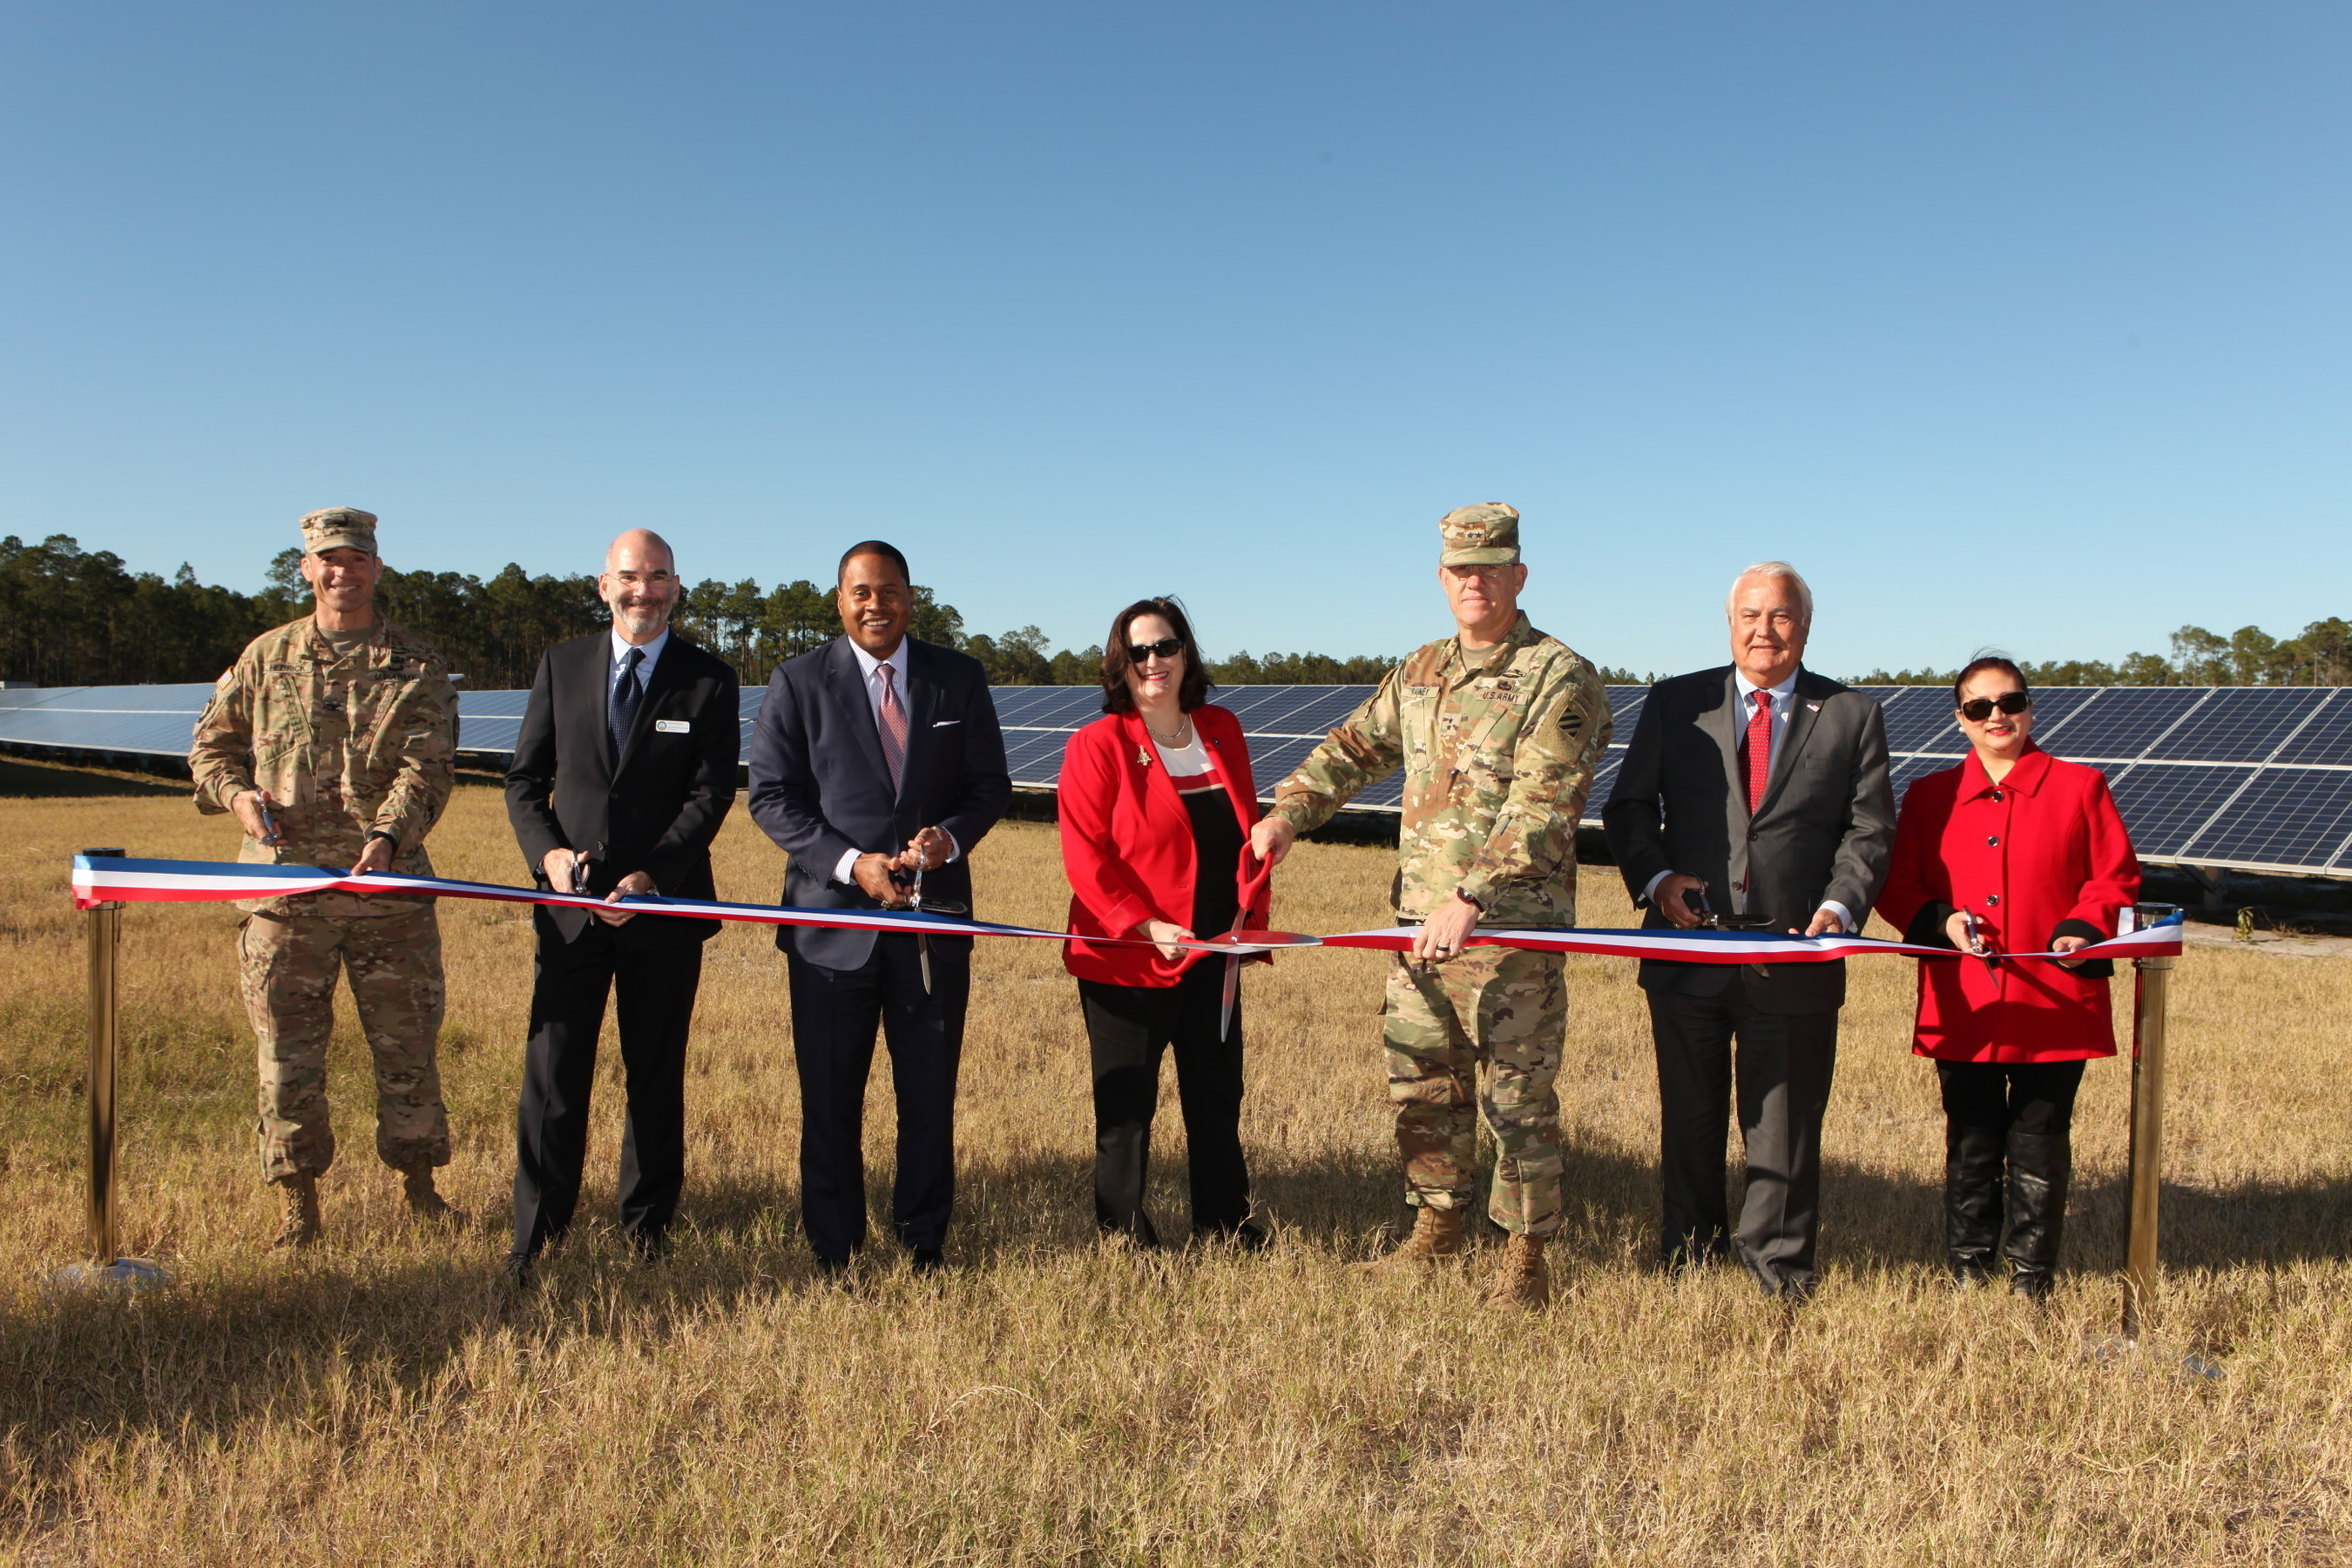 Leaders from Georgia Power and the U.S. Army joined elected officials, community leaders and other dignitaries at Fort Stewart near Hinesville, Ga. today to dedicate a new 30 megawatt (MW) on-base solar facility.